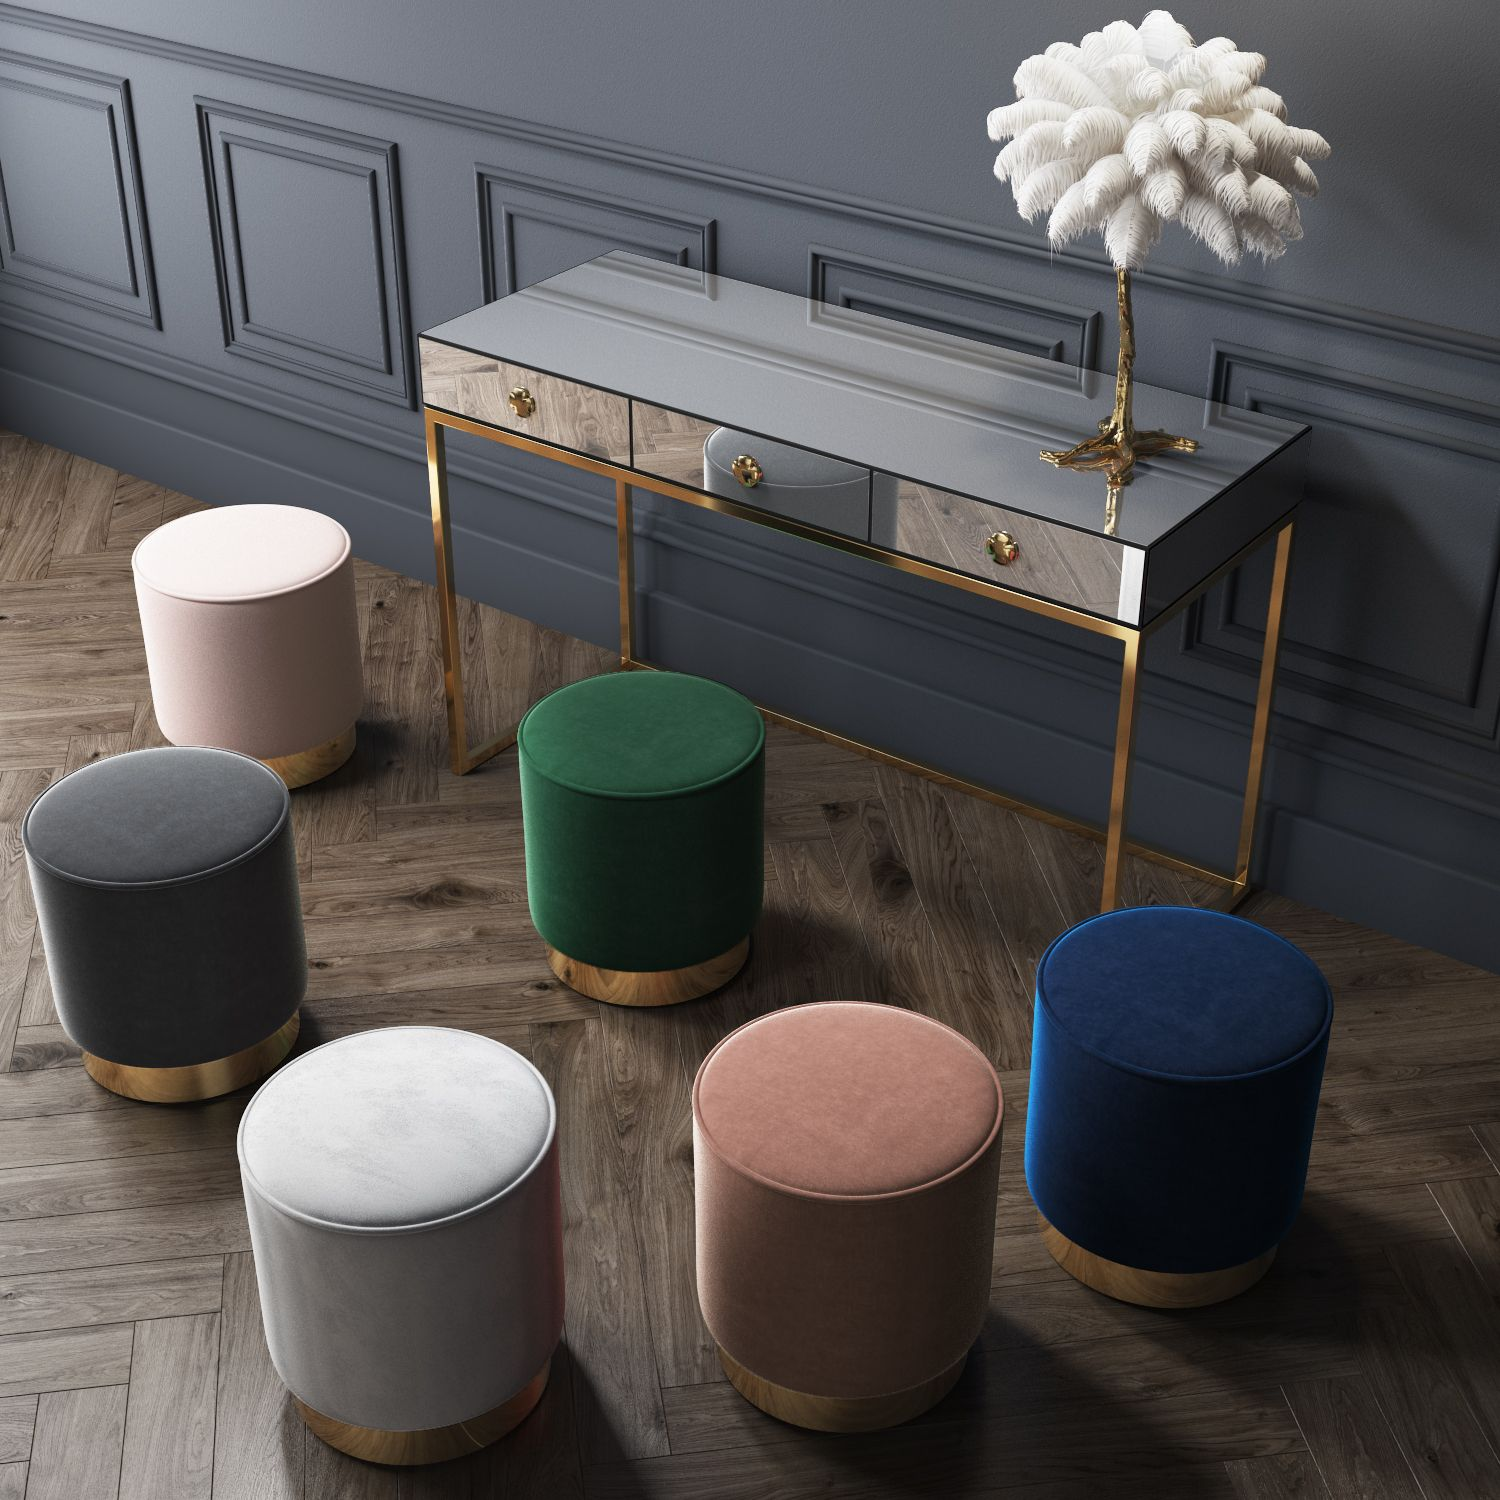 Xena Velvet Pouffe Footstool With Gold Brass Base In Dark Green Xen004 Blush Pink Navy Royal Blue Lig Brass Living Room Upholstered Stool Jewel Living Room